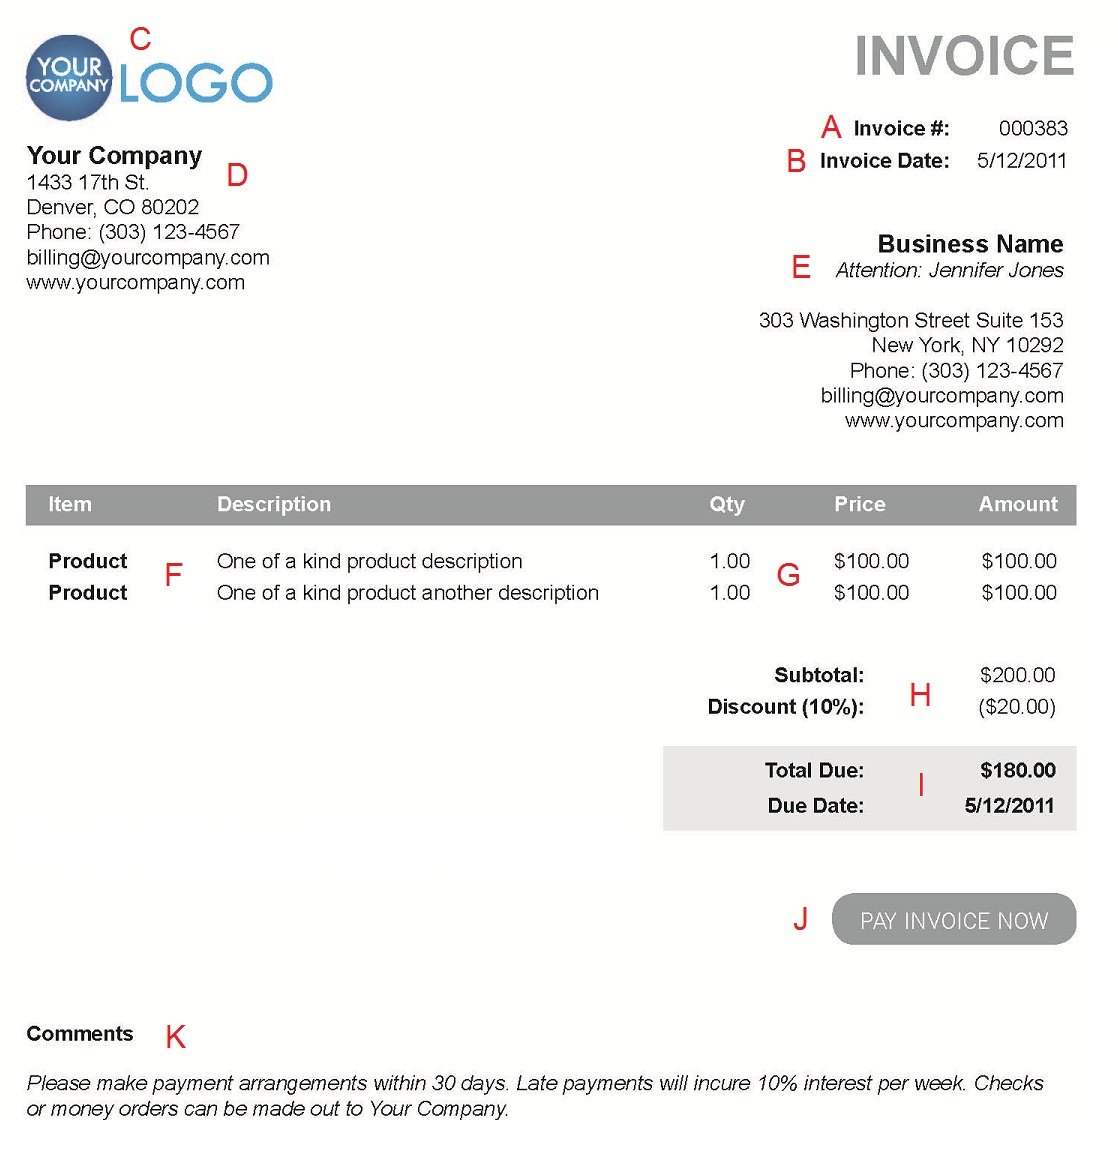 Coachoutletonlineplusus  Picturesque The  Different Sections Of An Electronic Payment Invoice With Luxury A  With Astonishing Invoice Download Template Also Construction Invoice Template Free In Addition Define Purchase Invoice And Invoice Performa As Well As Blank Printable Invoices Additionally Create An Invoice Online Free From Paysimplecom With Coachoutletonlineplusus  Luxury The  Different Sections Of An Electronic Payment Invoice With Astonishing A  And Picturesque Invoice Download Template Also Construction Invoice Template Free In Addition Define Purchase Invoice From Paysimplecom